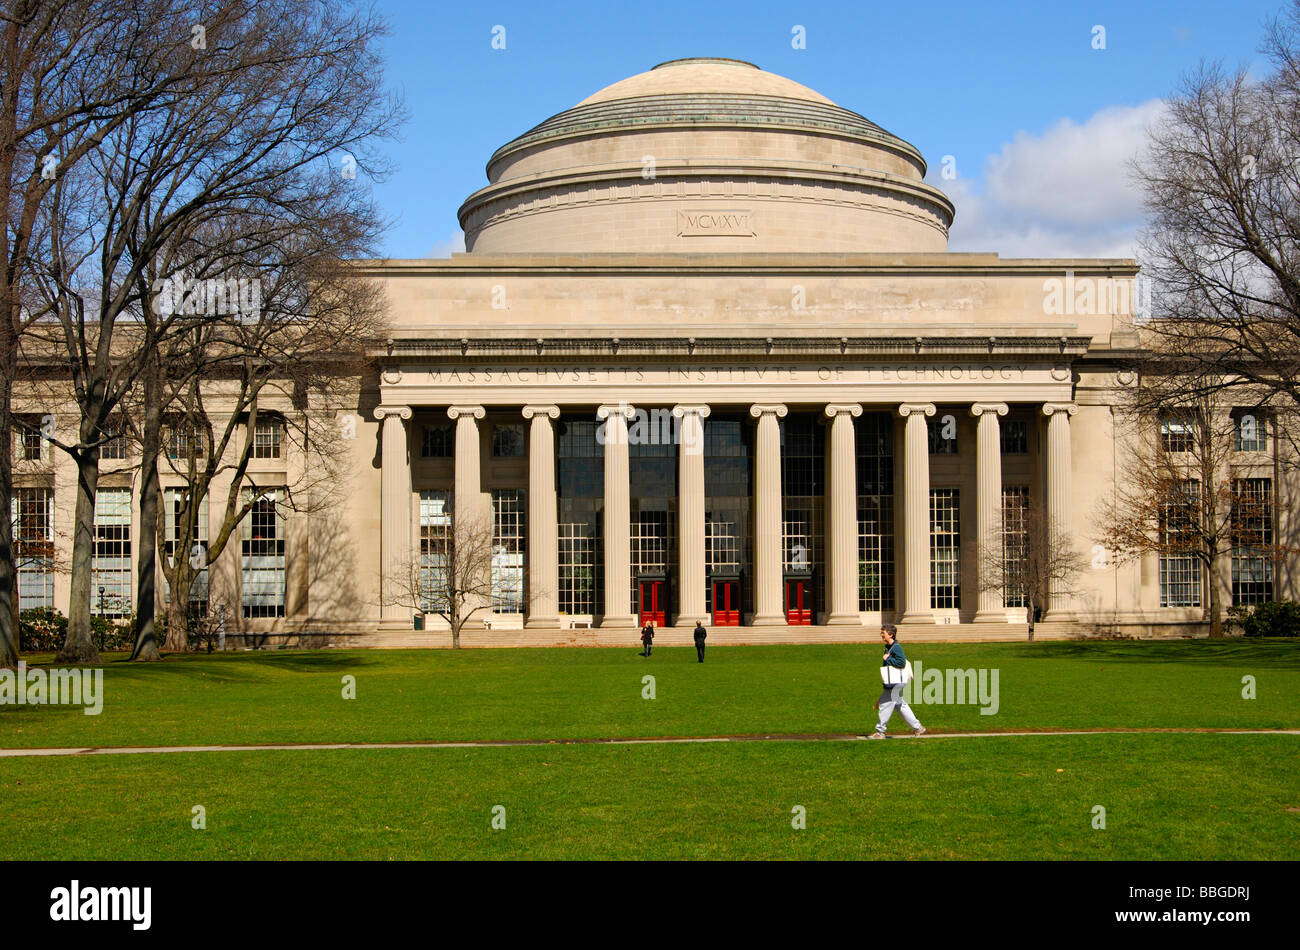 The central part of the Maclaurin Building, Massachusetts Institute of Technology, MIT, Cambridge, Massachusetts, - Stock Image